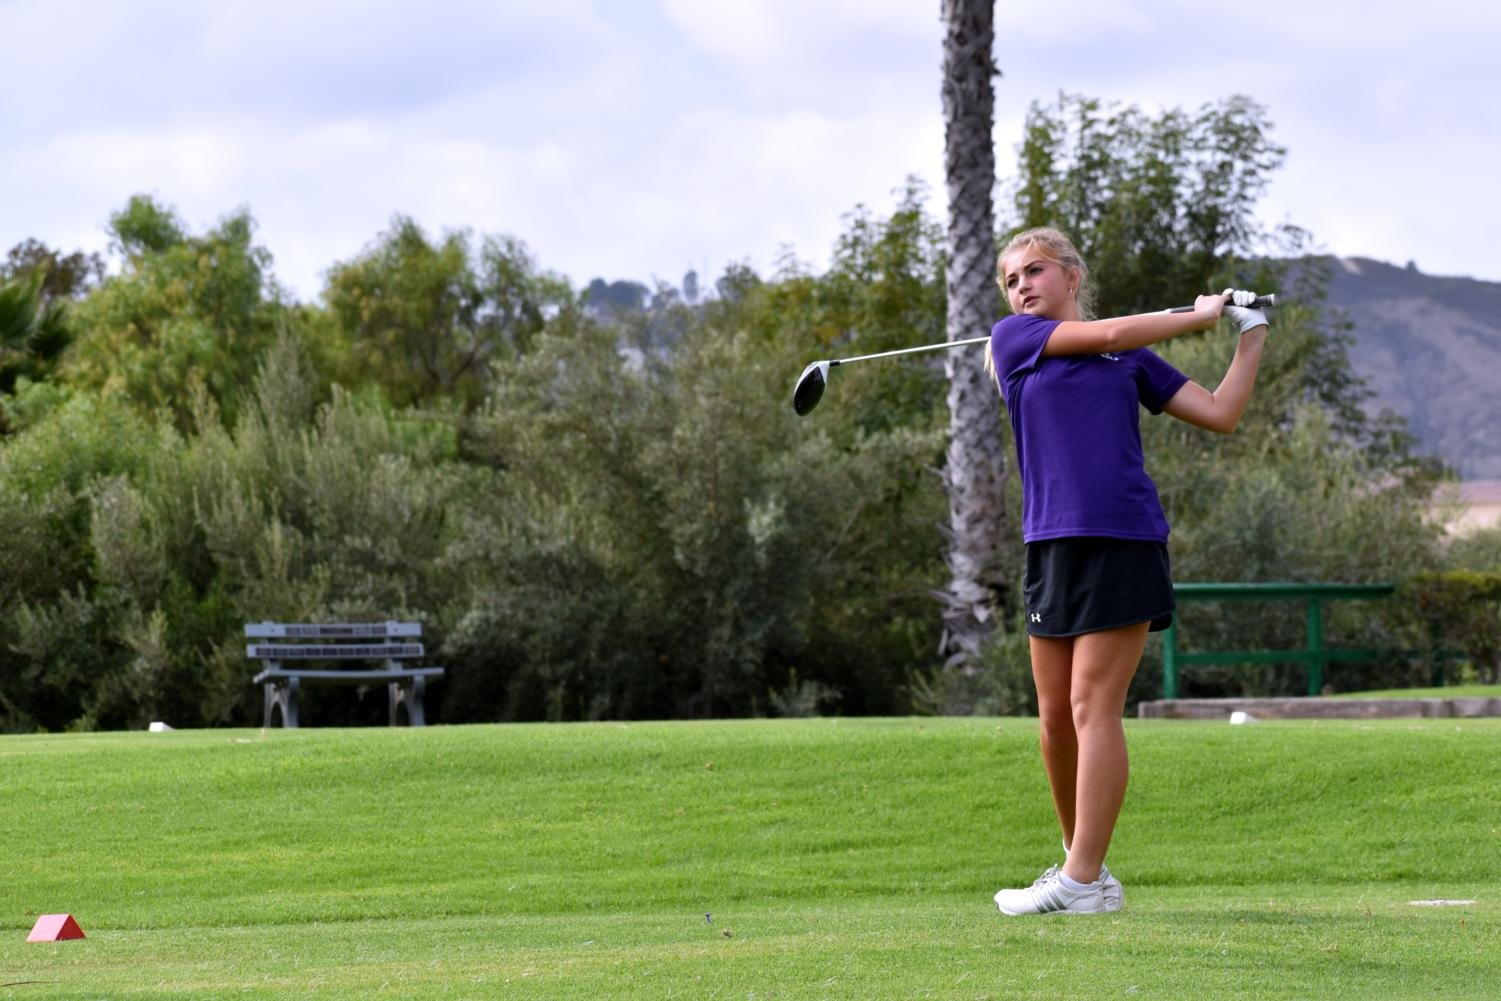 Sophomore and golfer Maddie Amlen rehearses her back swing at the first hole, preparing herself for a challenge throughout the match. Golfers on the high school level play nine holes in total, compared to the 18 that professionals play.